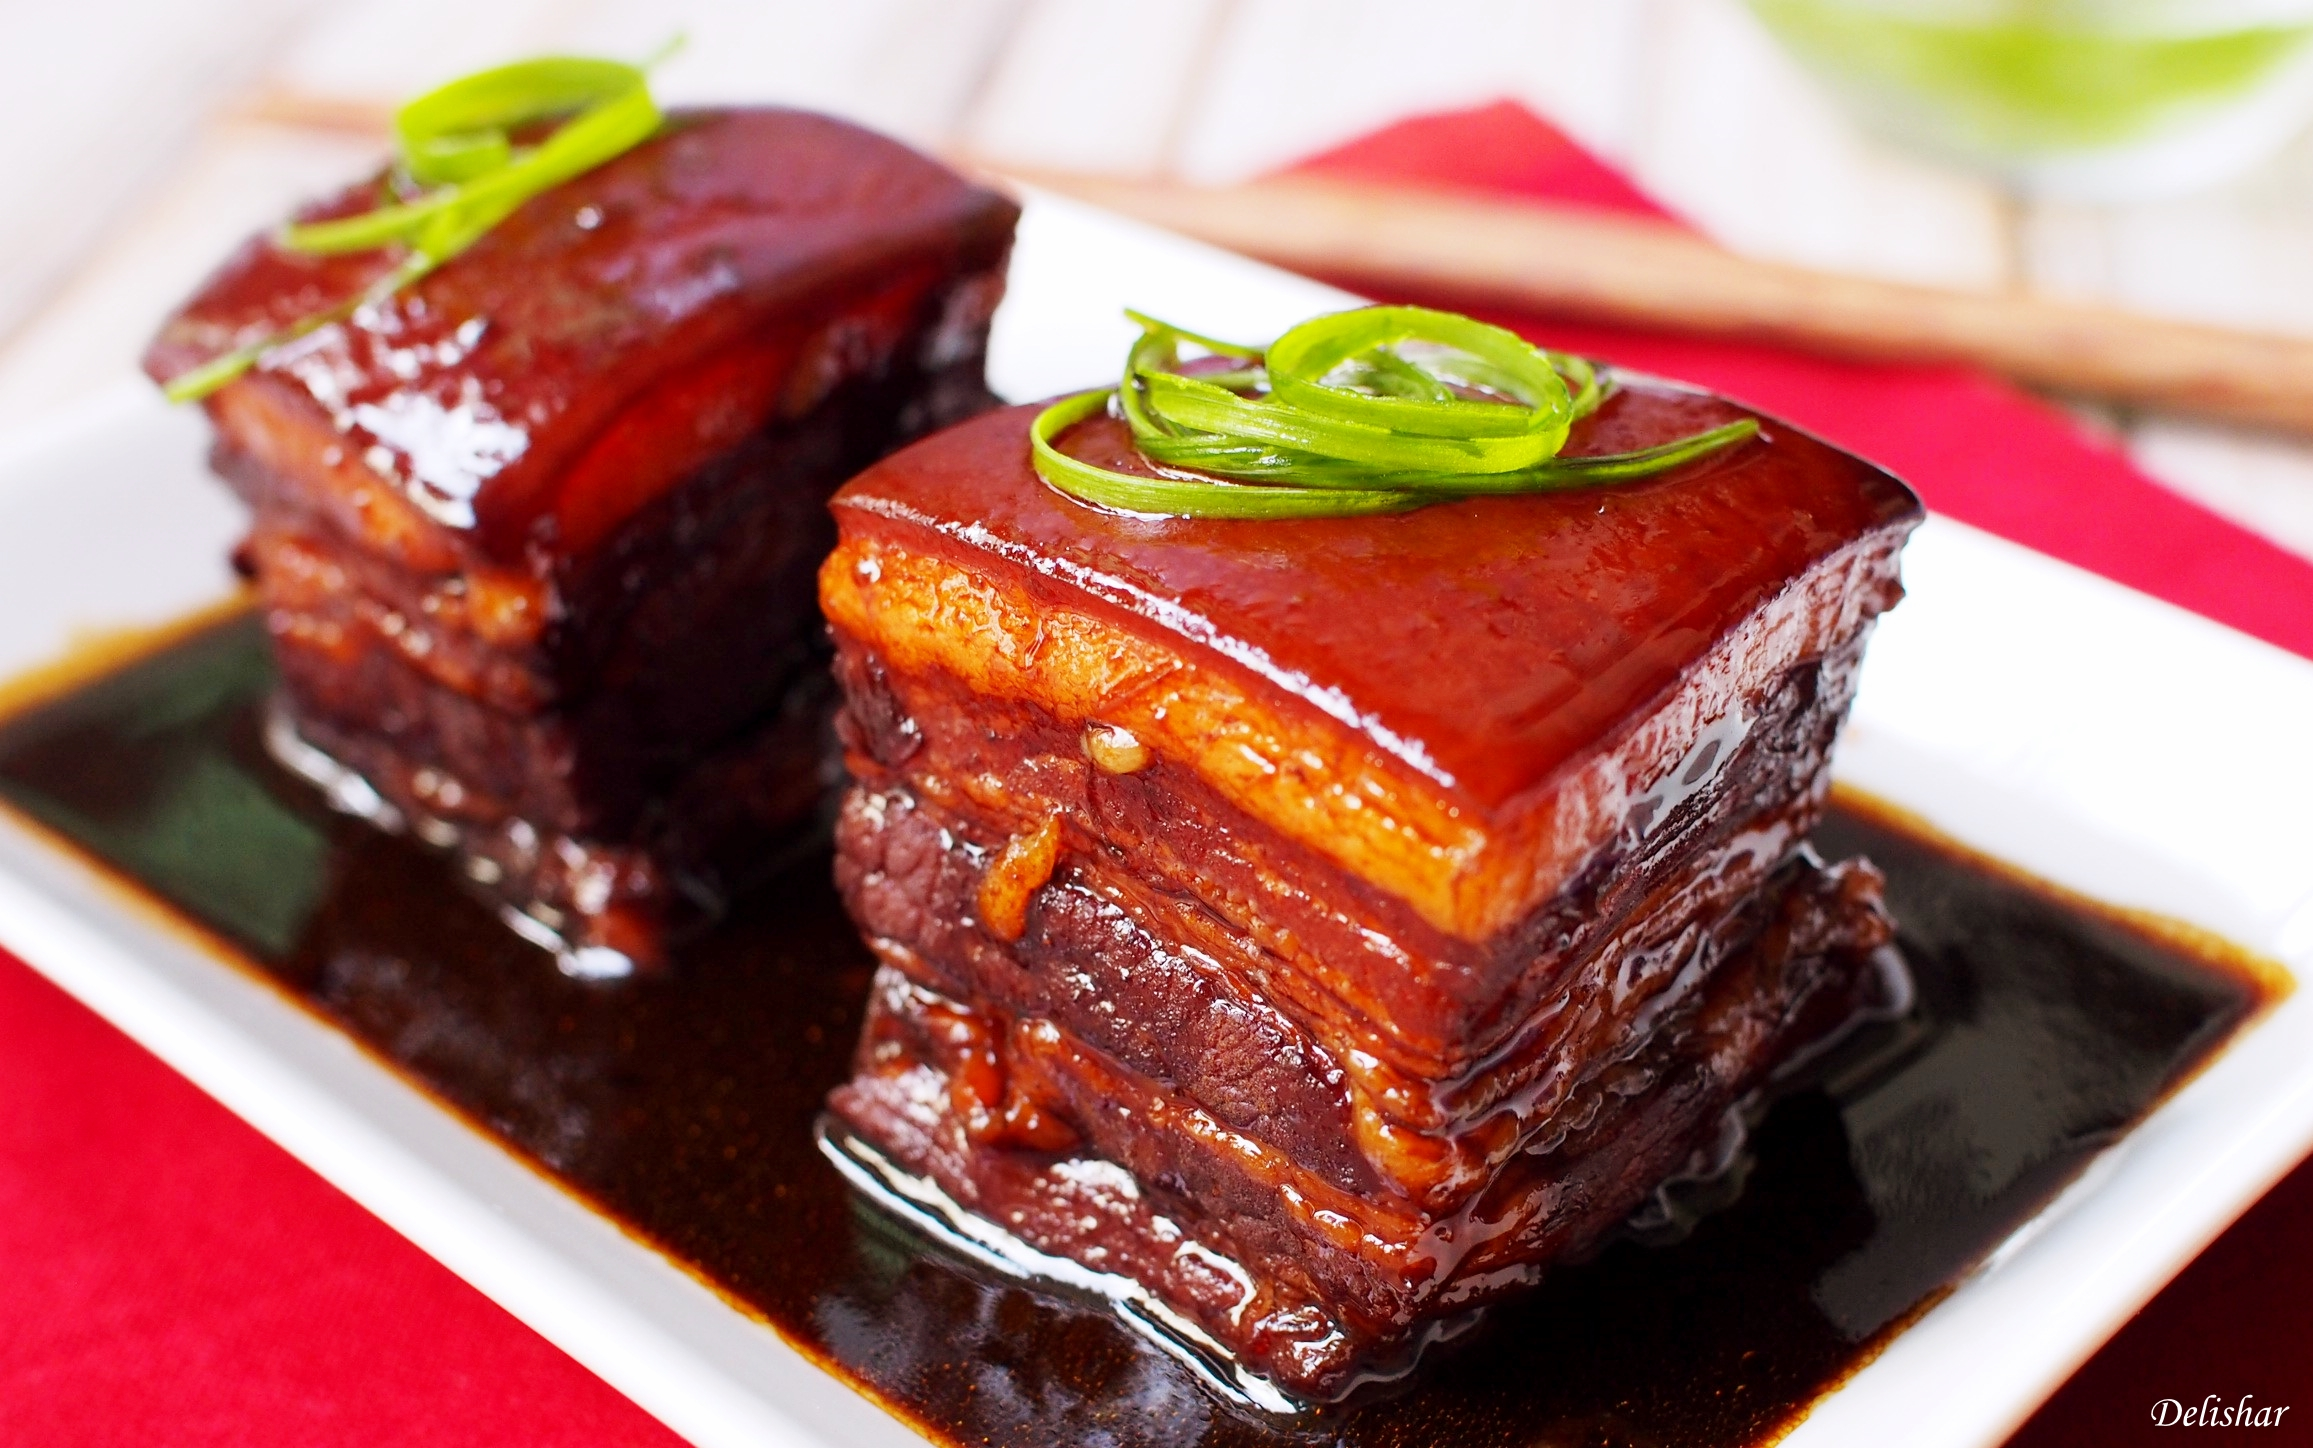 Dong Po Rou (Braised Pork Belly) | Delishar - Singapore Cooking Blog